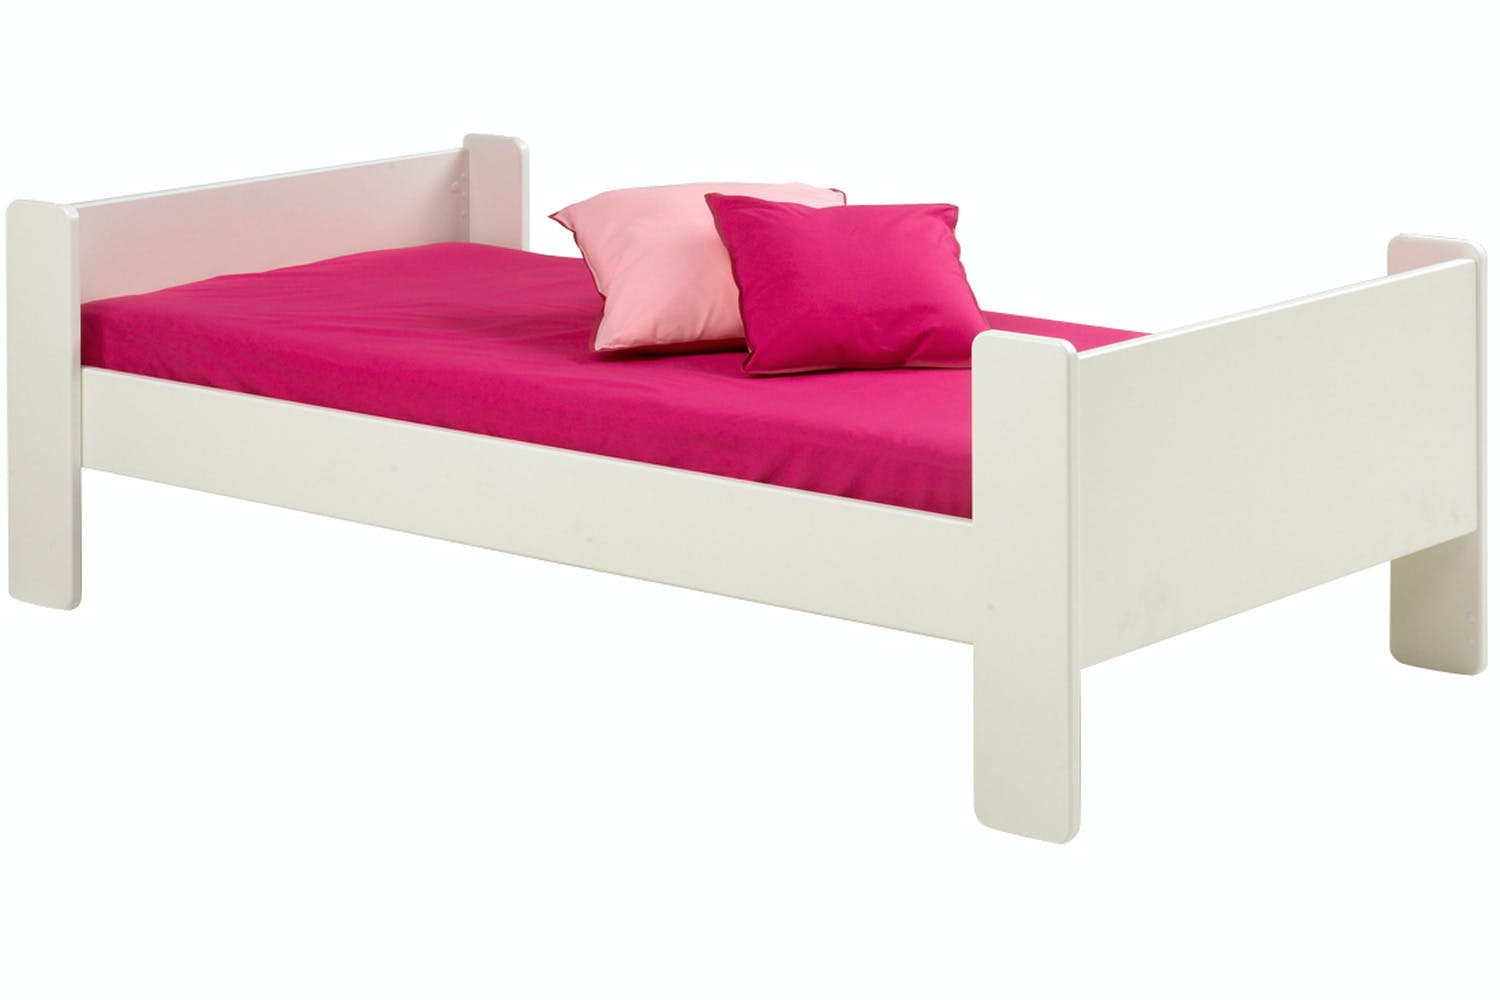 Popsicle single bed frame shop at harvey norman ireland for Couch 90x200